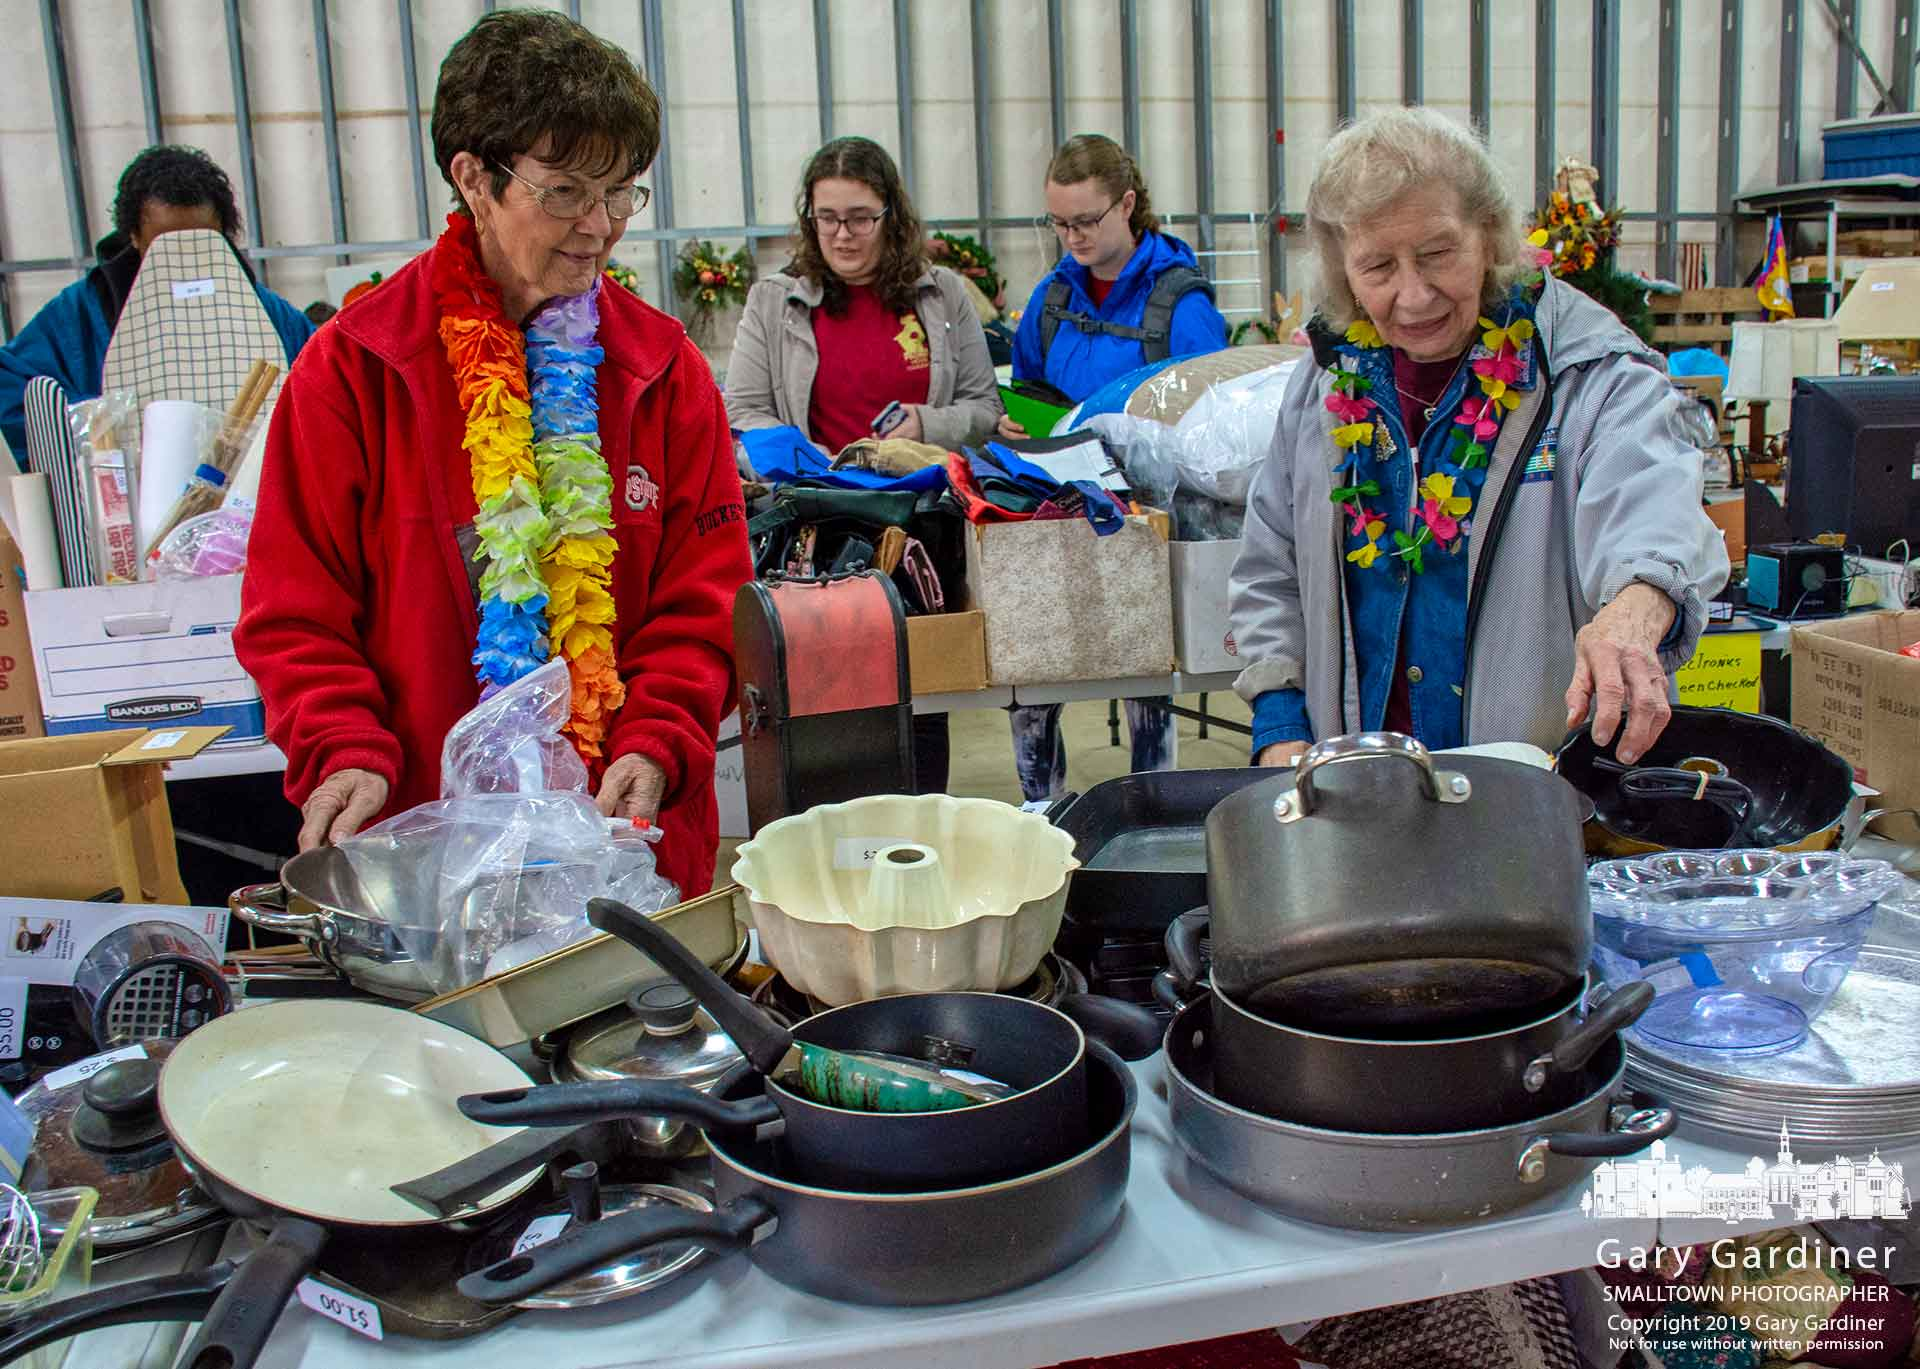 Shoppers inspect the collection of donated items for sale at the annual Senior Center Garage Sale Thursday afternoon. My Final Photo for April 25, 2019.